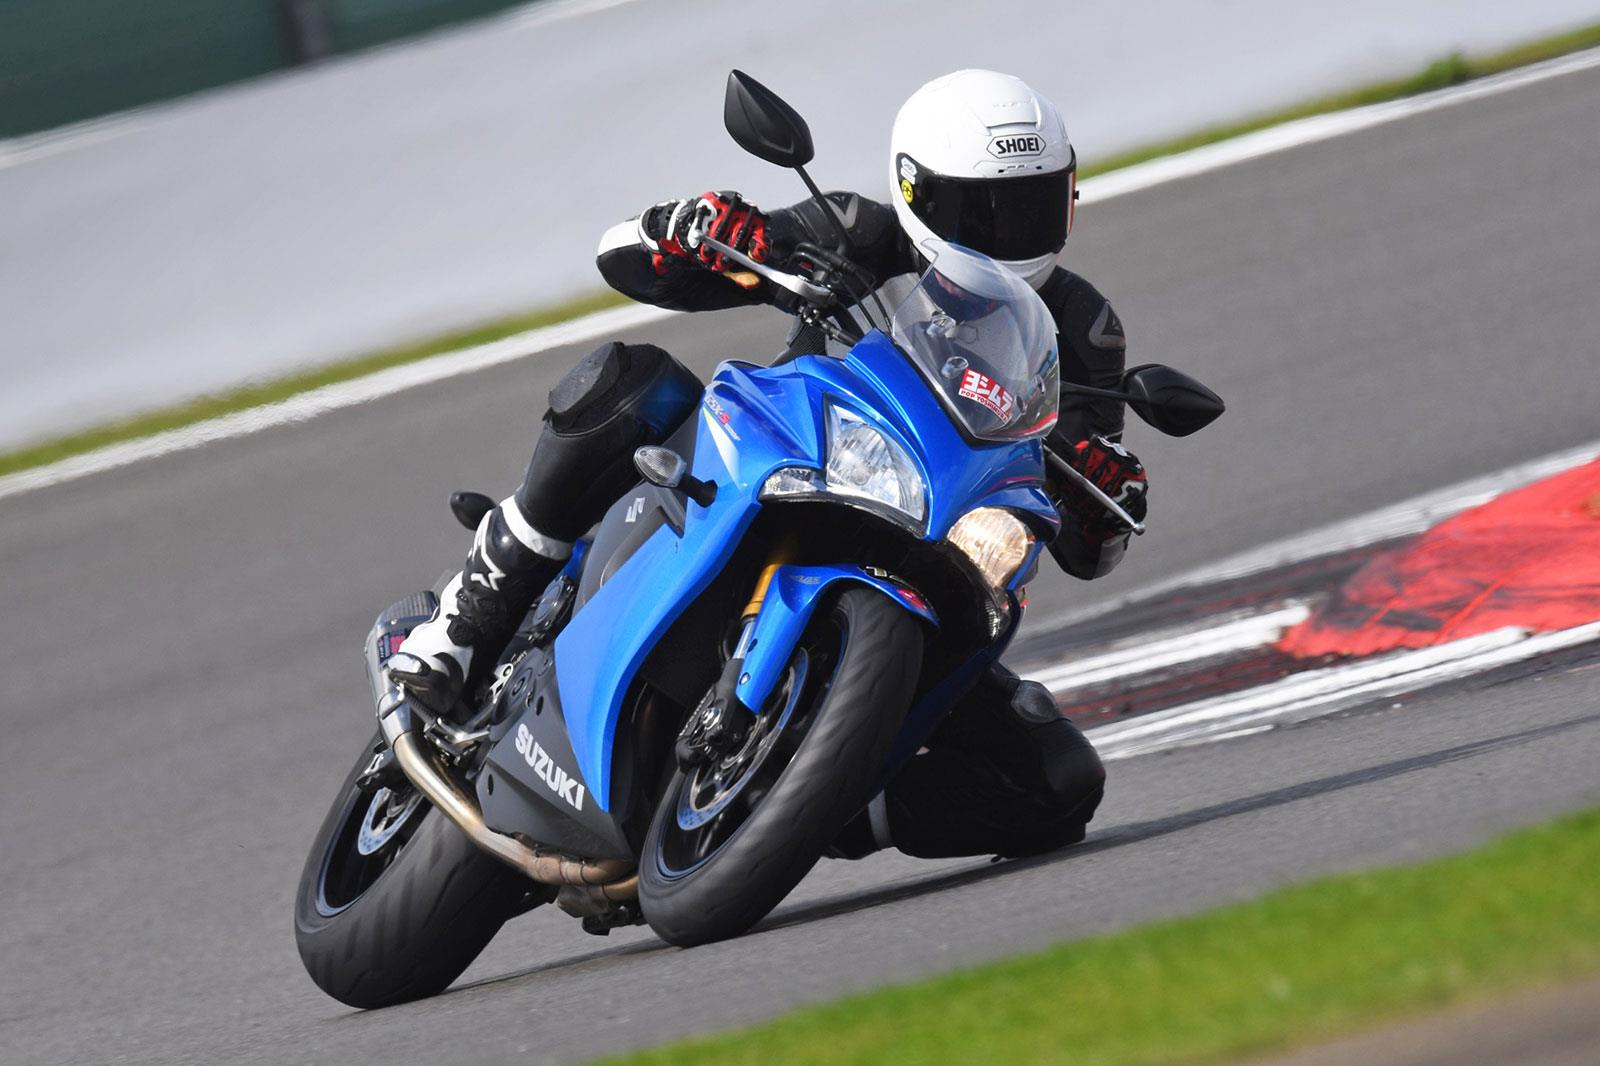 Ride at Silverstone with an all-star line-up